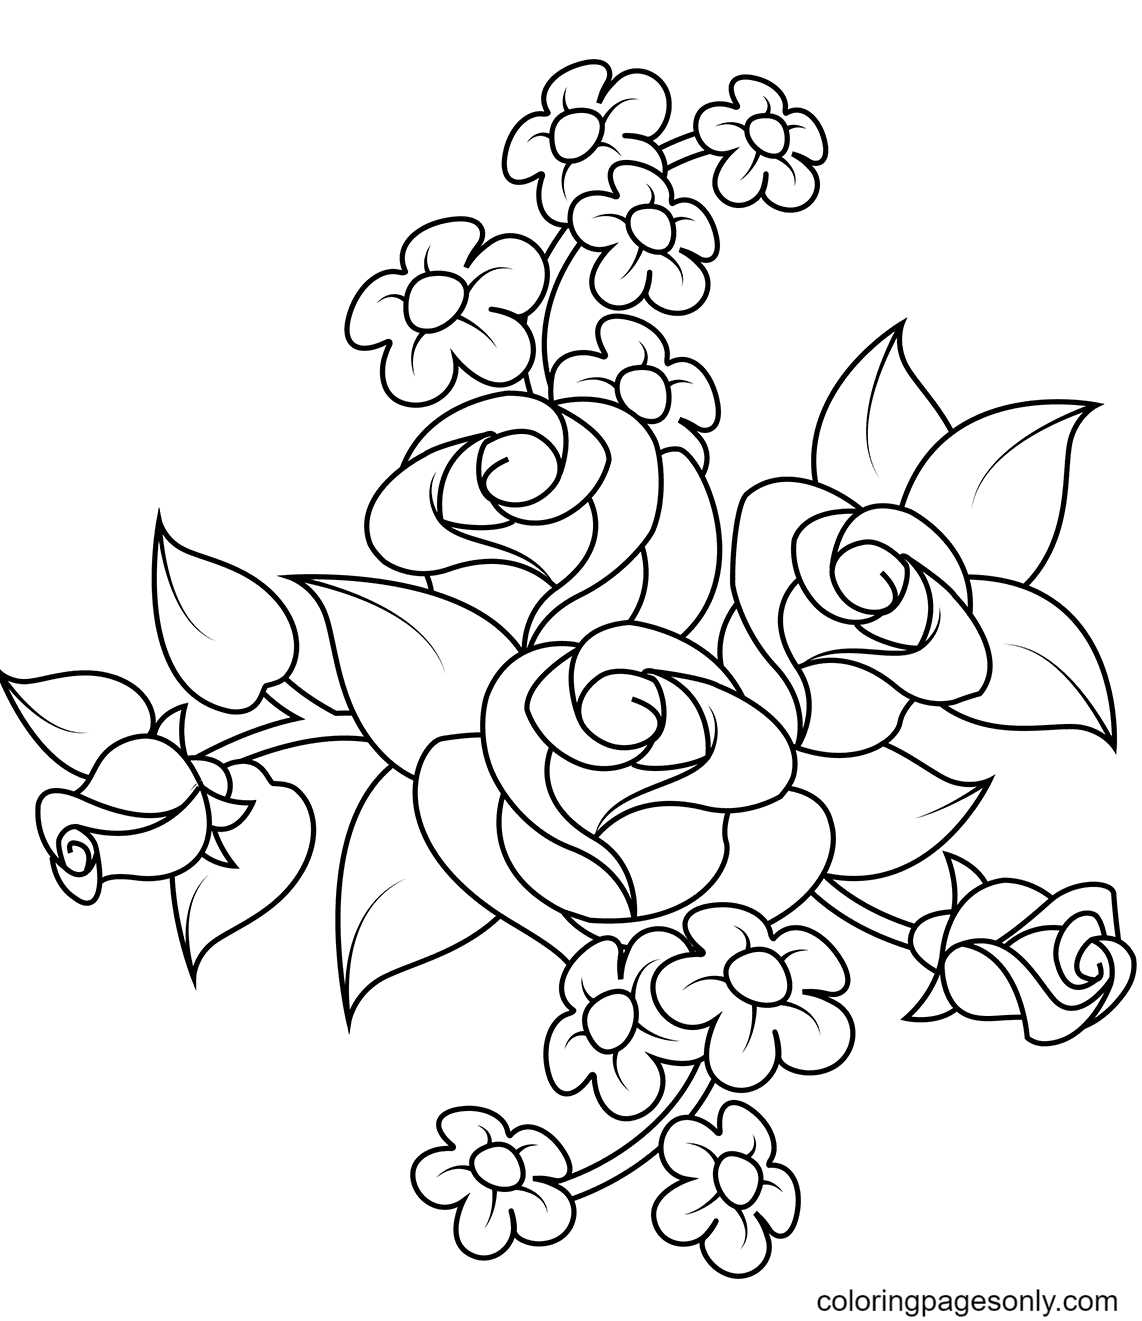 Bouquet of Roses With Three Big Flowers Coloring Page